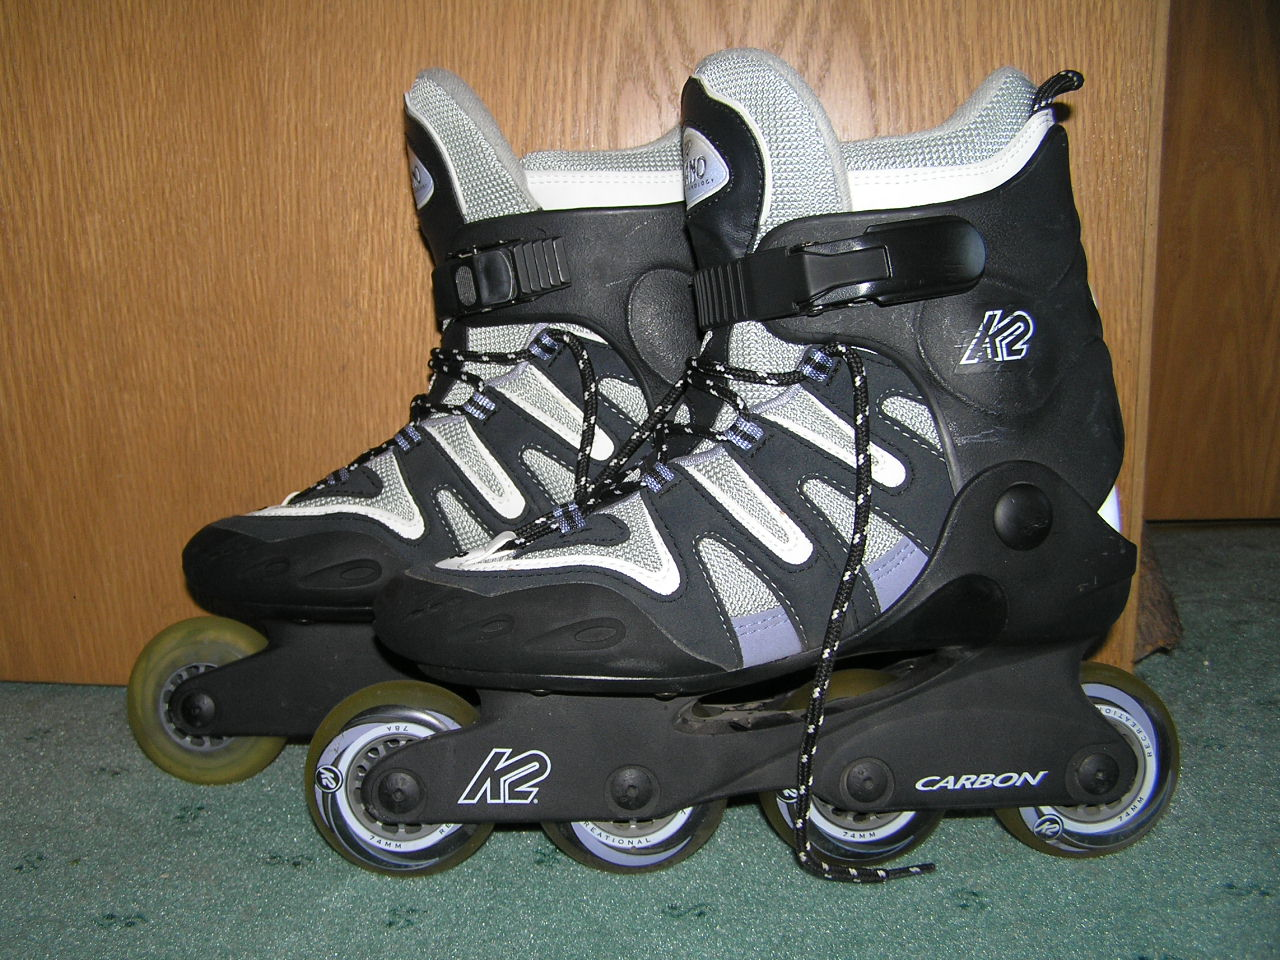 k2 inliner skates gr 38 39 inline skate skates softboots. Black Bedroom Furniture Sets. Home Design Ideas